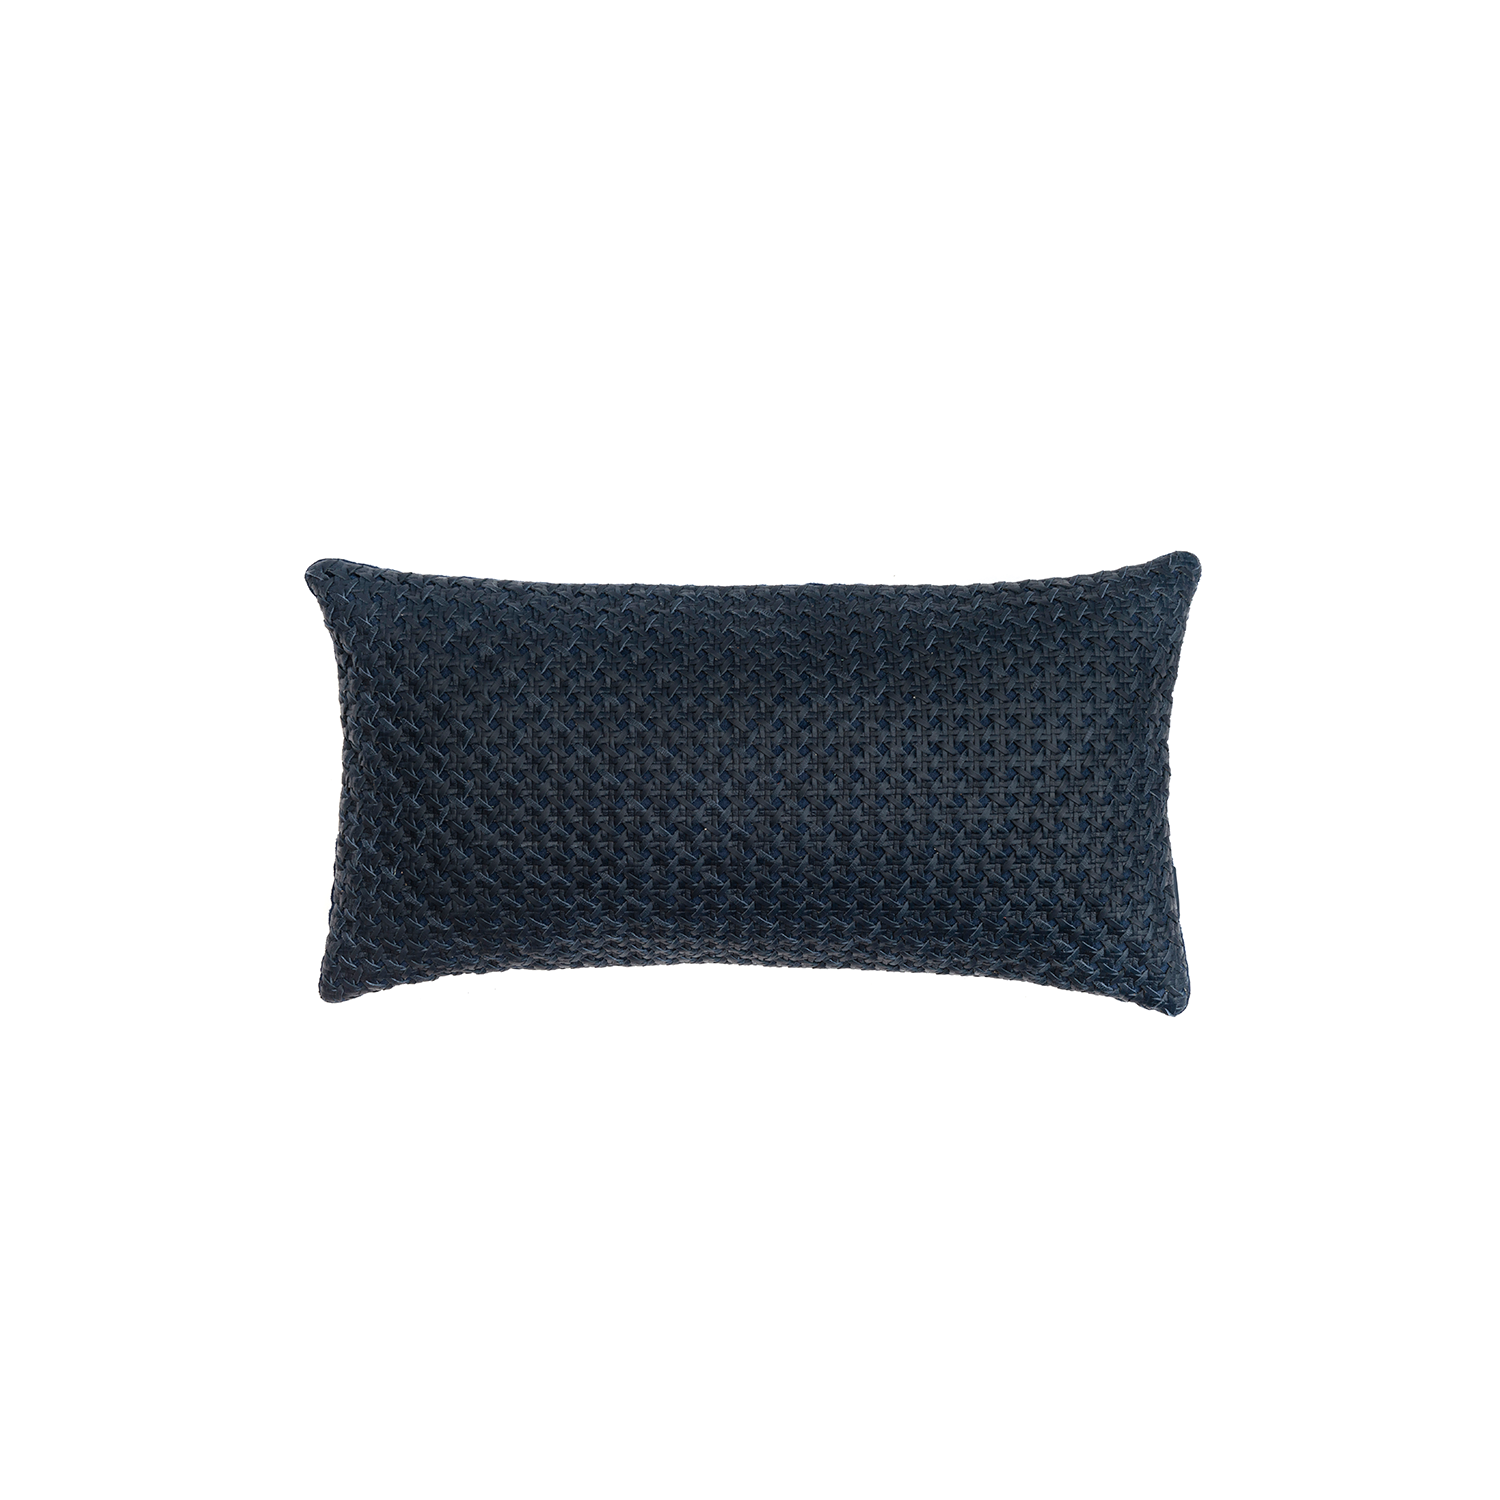 Mini Catavento Woven Leather Cushion Small - The Mini Catavento Woven Leather Cushion is designed to complement an ambient with a natural and sophisticated feeling. This cushion style is available in pleated leather or pleated suede leather. Elisa Atheniense woven handmade leather cushions are specially manufactured in Brazil using an exclusive treated leather that brings the soft feel touch to every single piece.   The front panel is handwoven in leather and the back panel is 100% Pes, made in Brazil.  The inner cushion is available in Hollow Fibre and European Duck Feathers, made in the UK.  Please enquire for more information and see colour chart for reference.   | Matter of Stuff